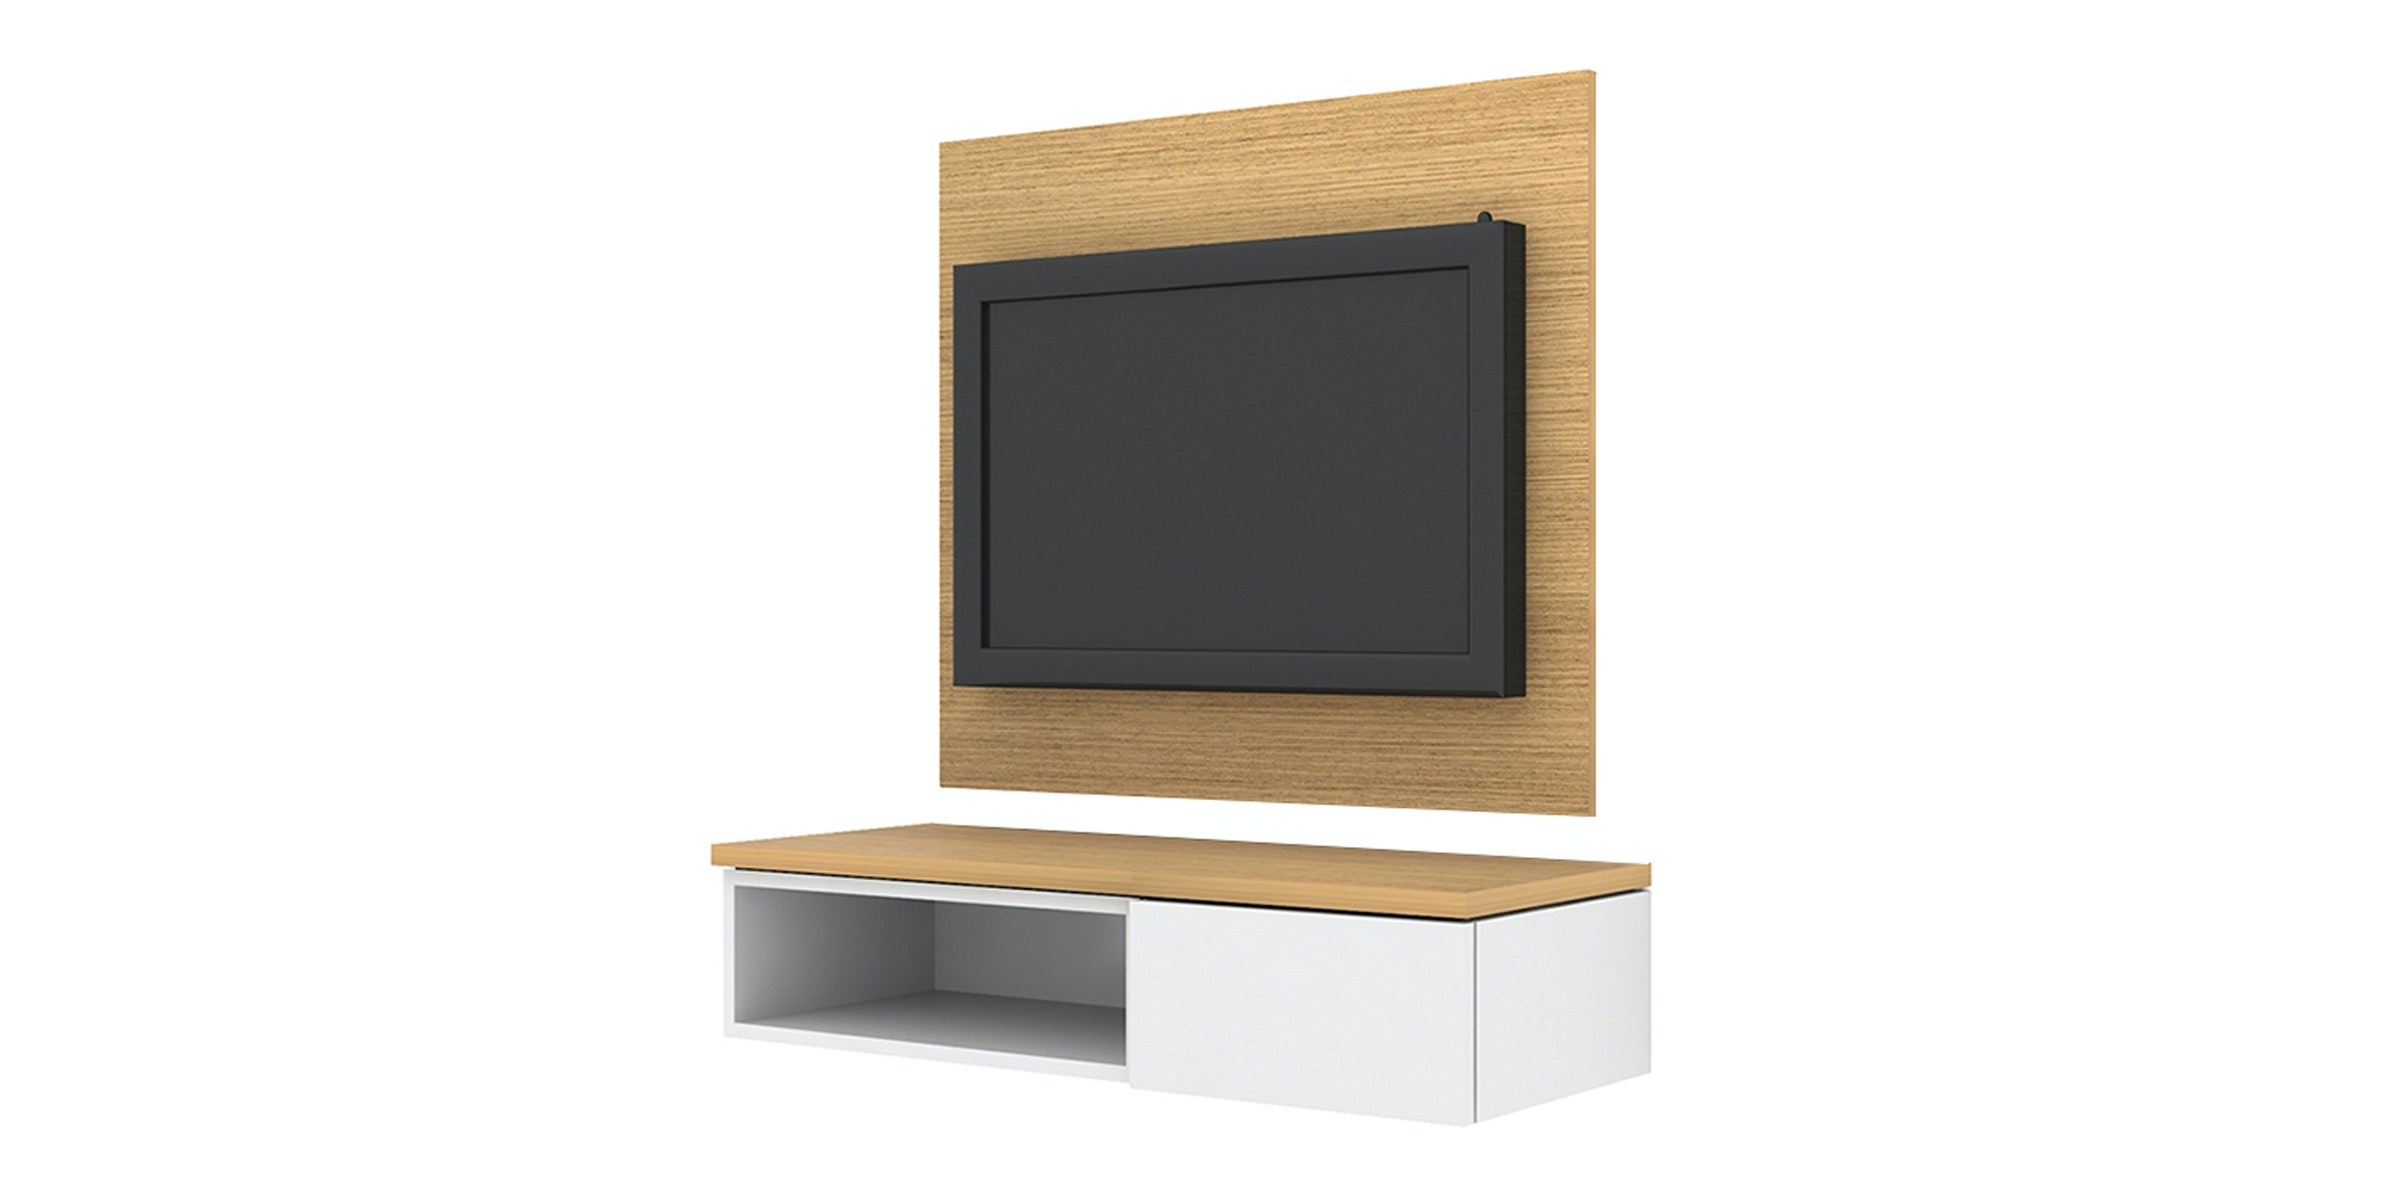 Case Furniture TV Cabinet with Wall Panel PCI005-01-WP1008 Desert Oak - White